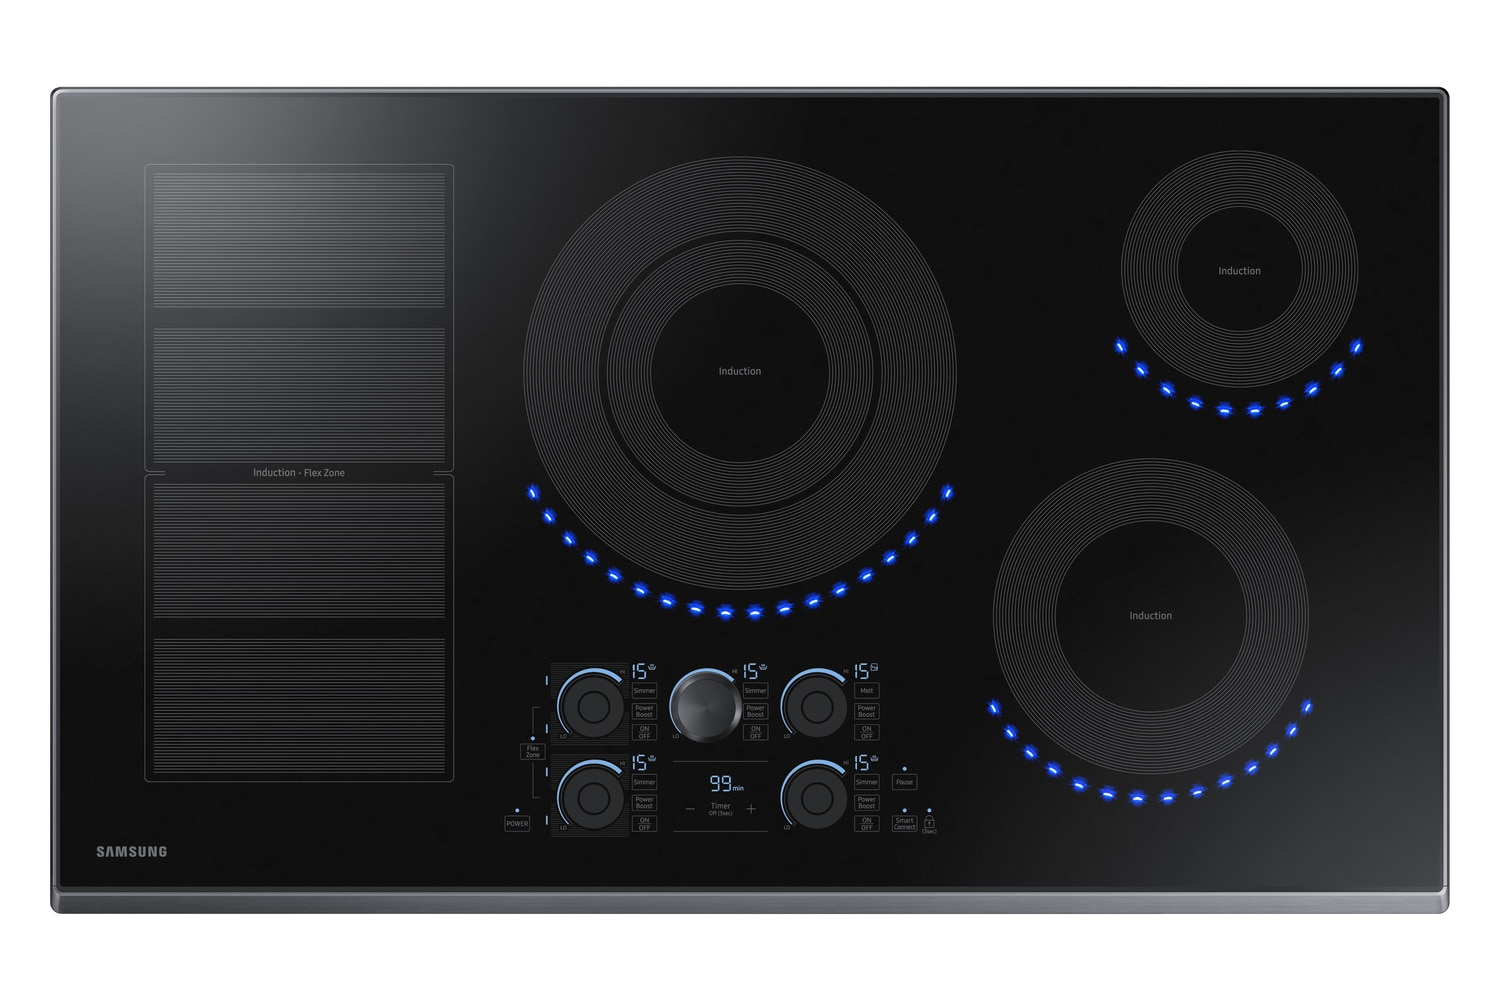 Samsung Black Stainless Steel Induction Cooktop - NZ36K7880UG/AA